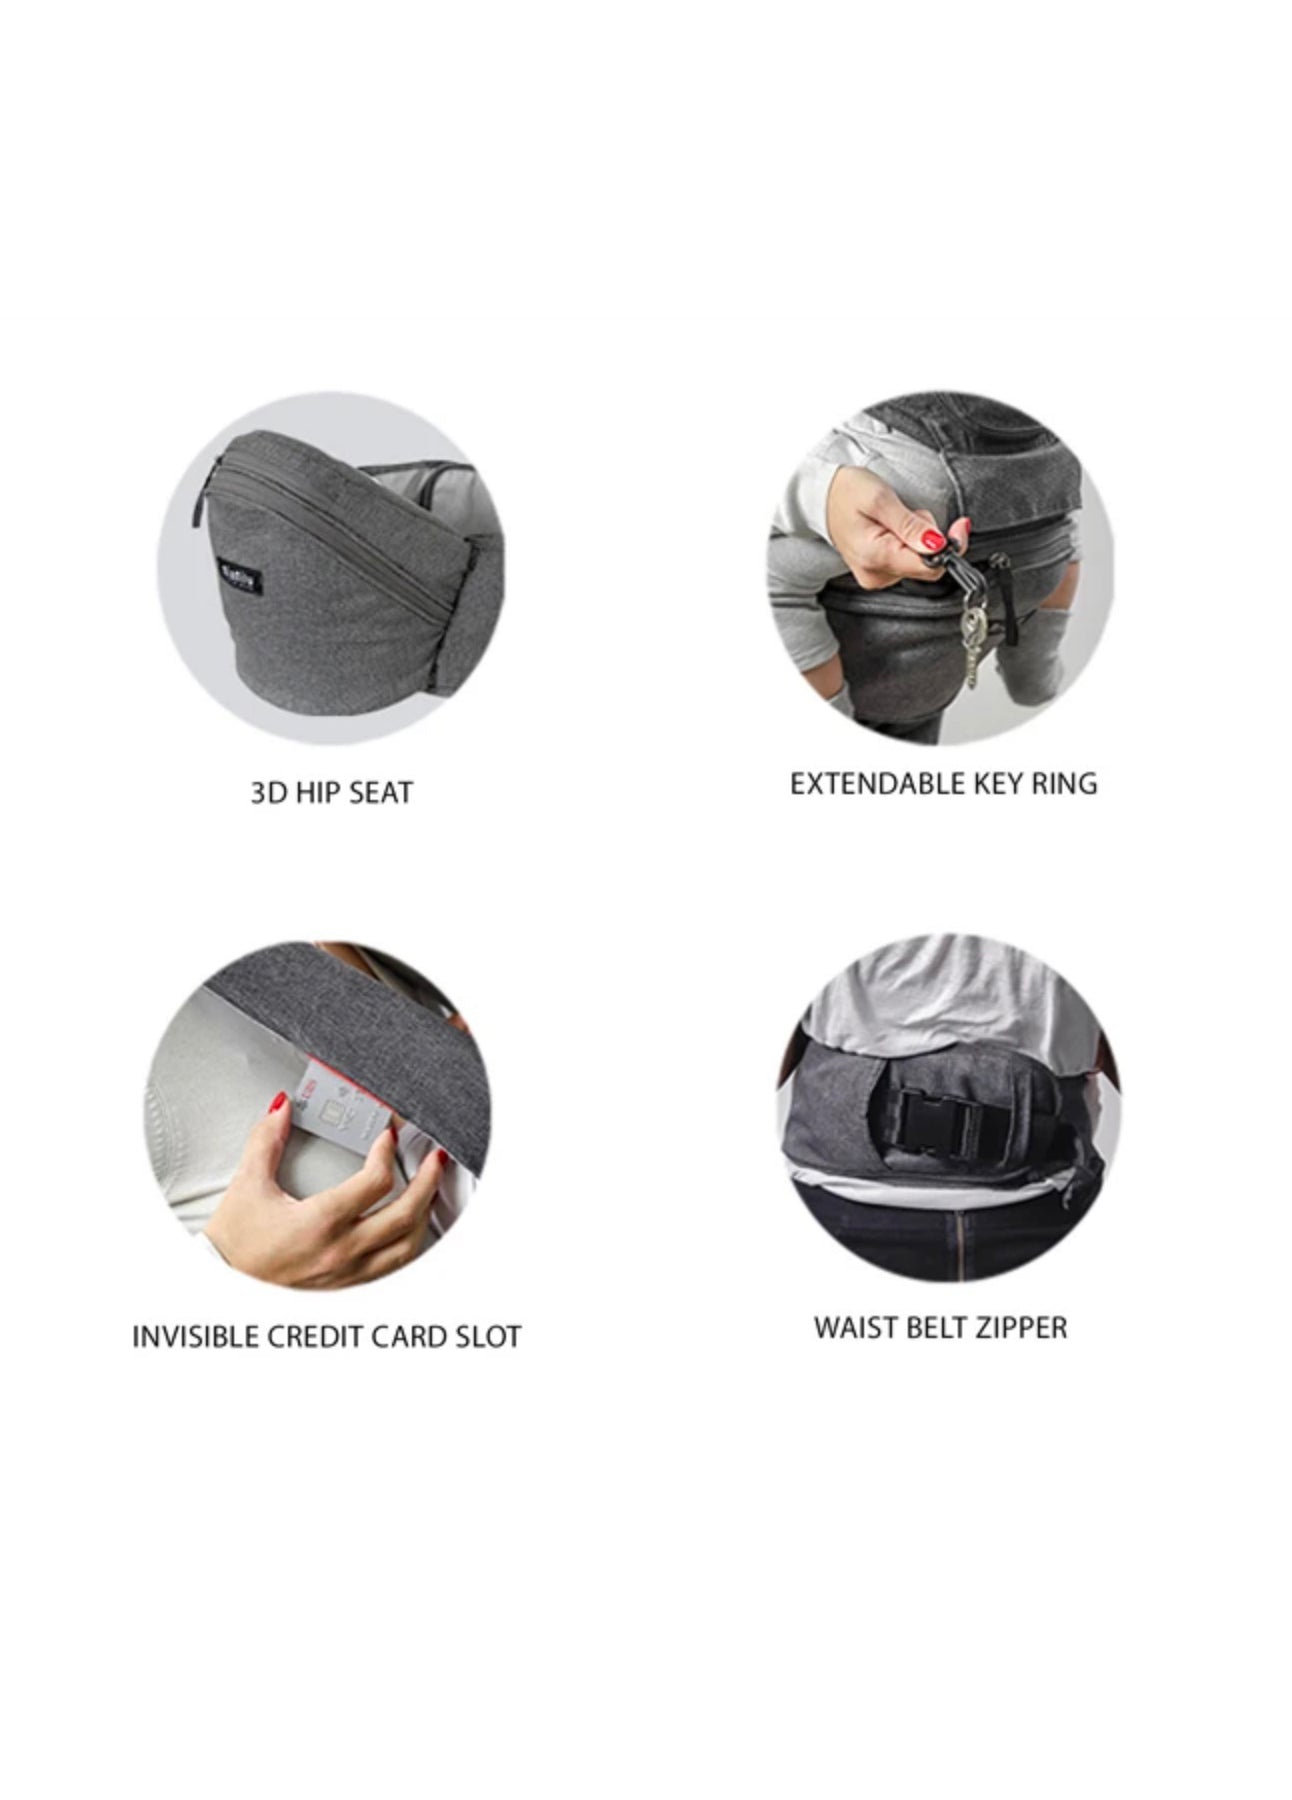 HIPSTER™ SMART 3D Baby Carrier features